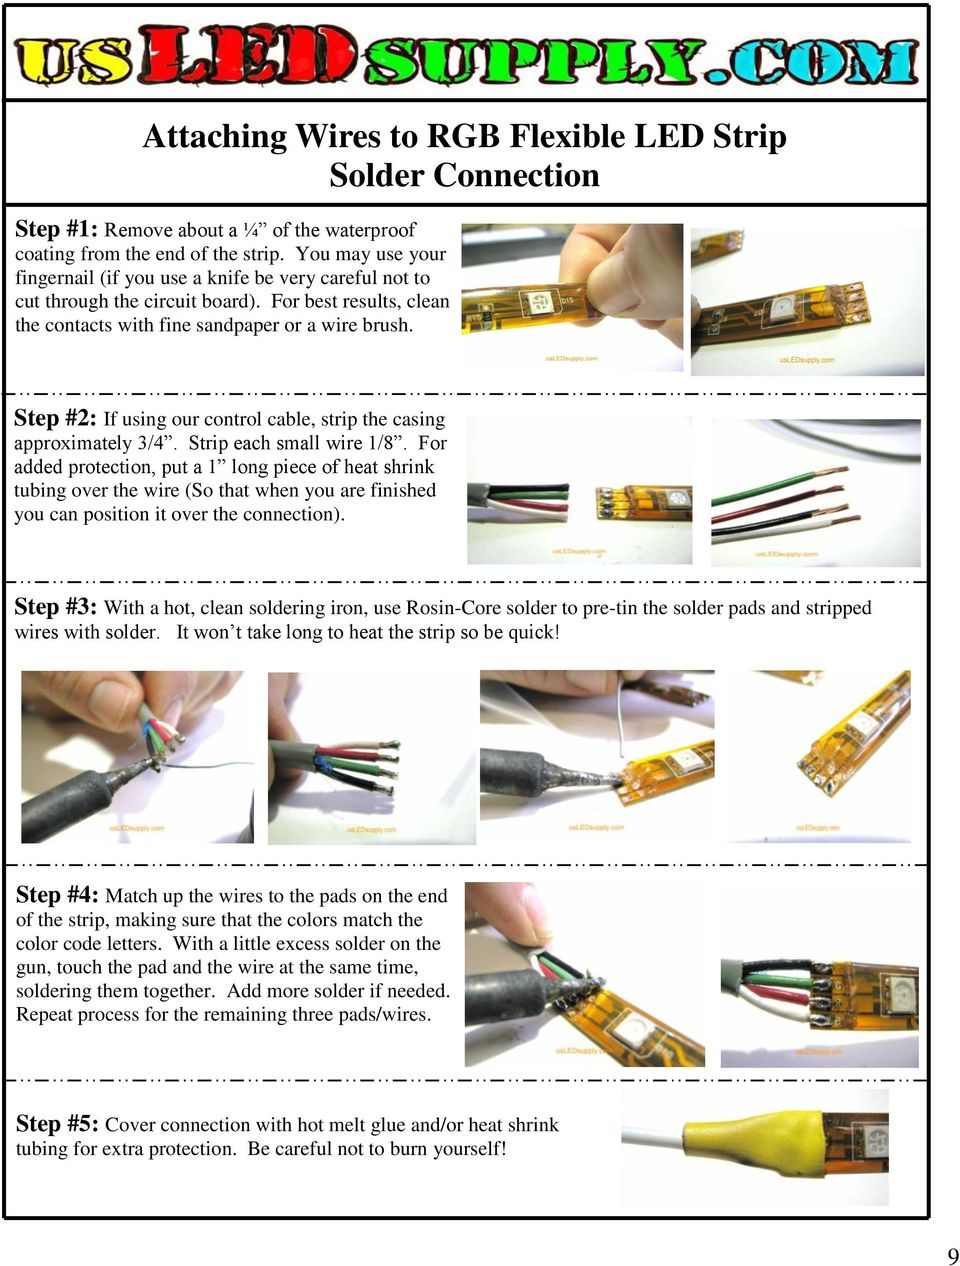 Step #2: If using our control cable, strip the casing approximately 3/4. Strip each small wire 1/8.